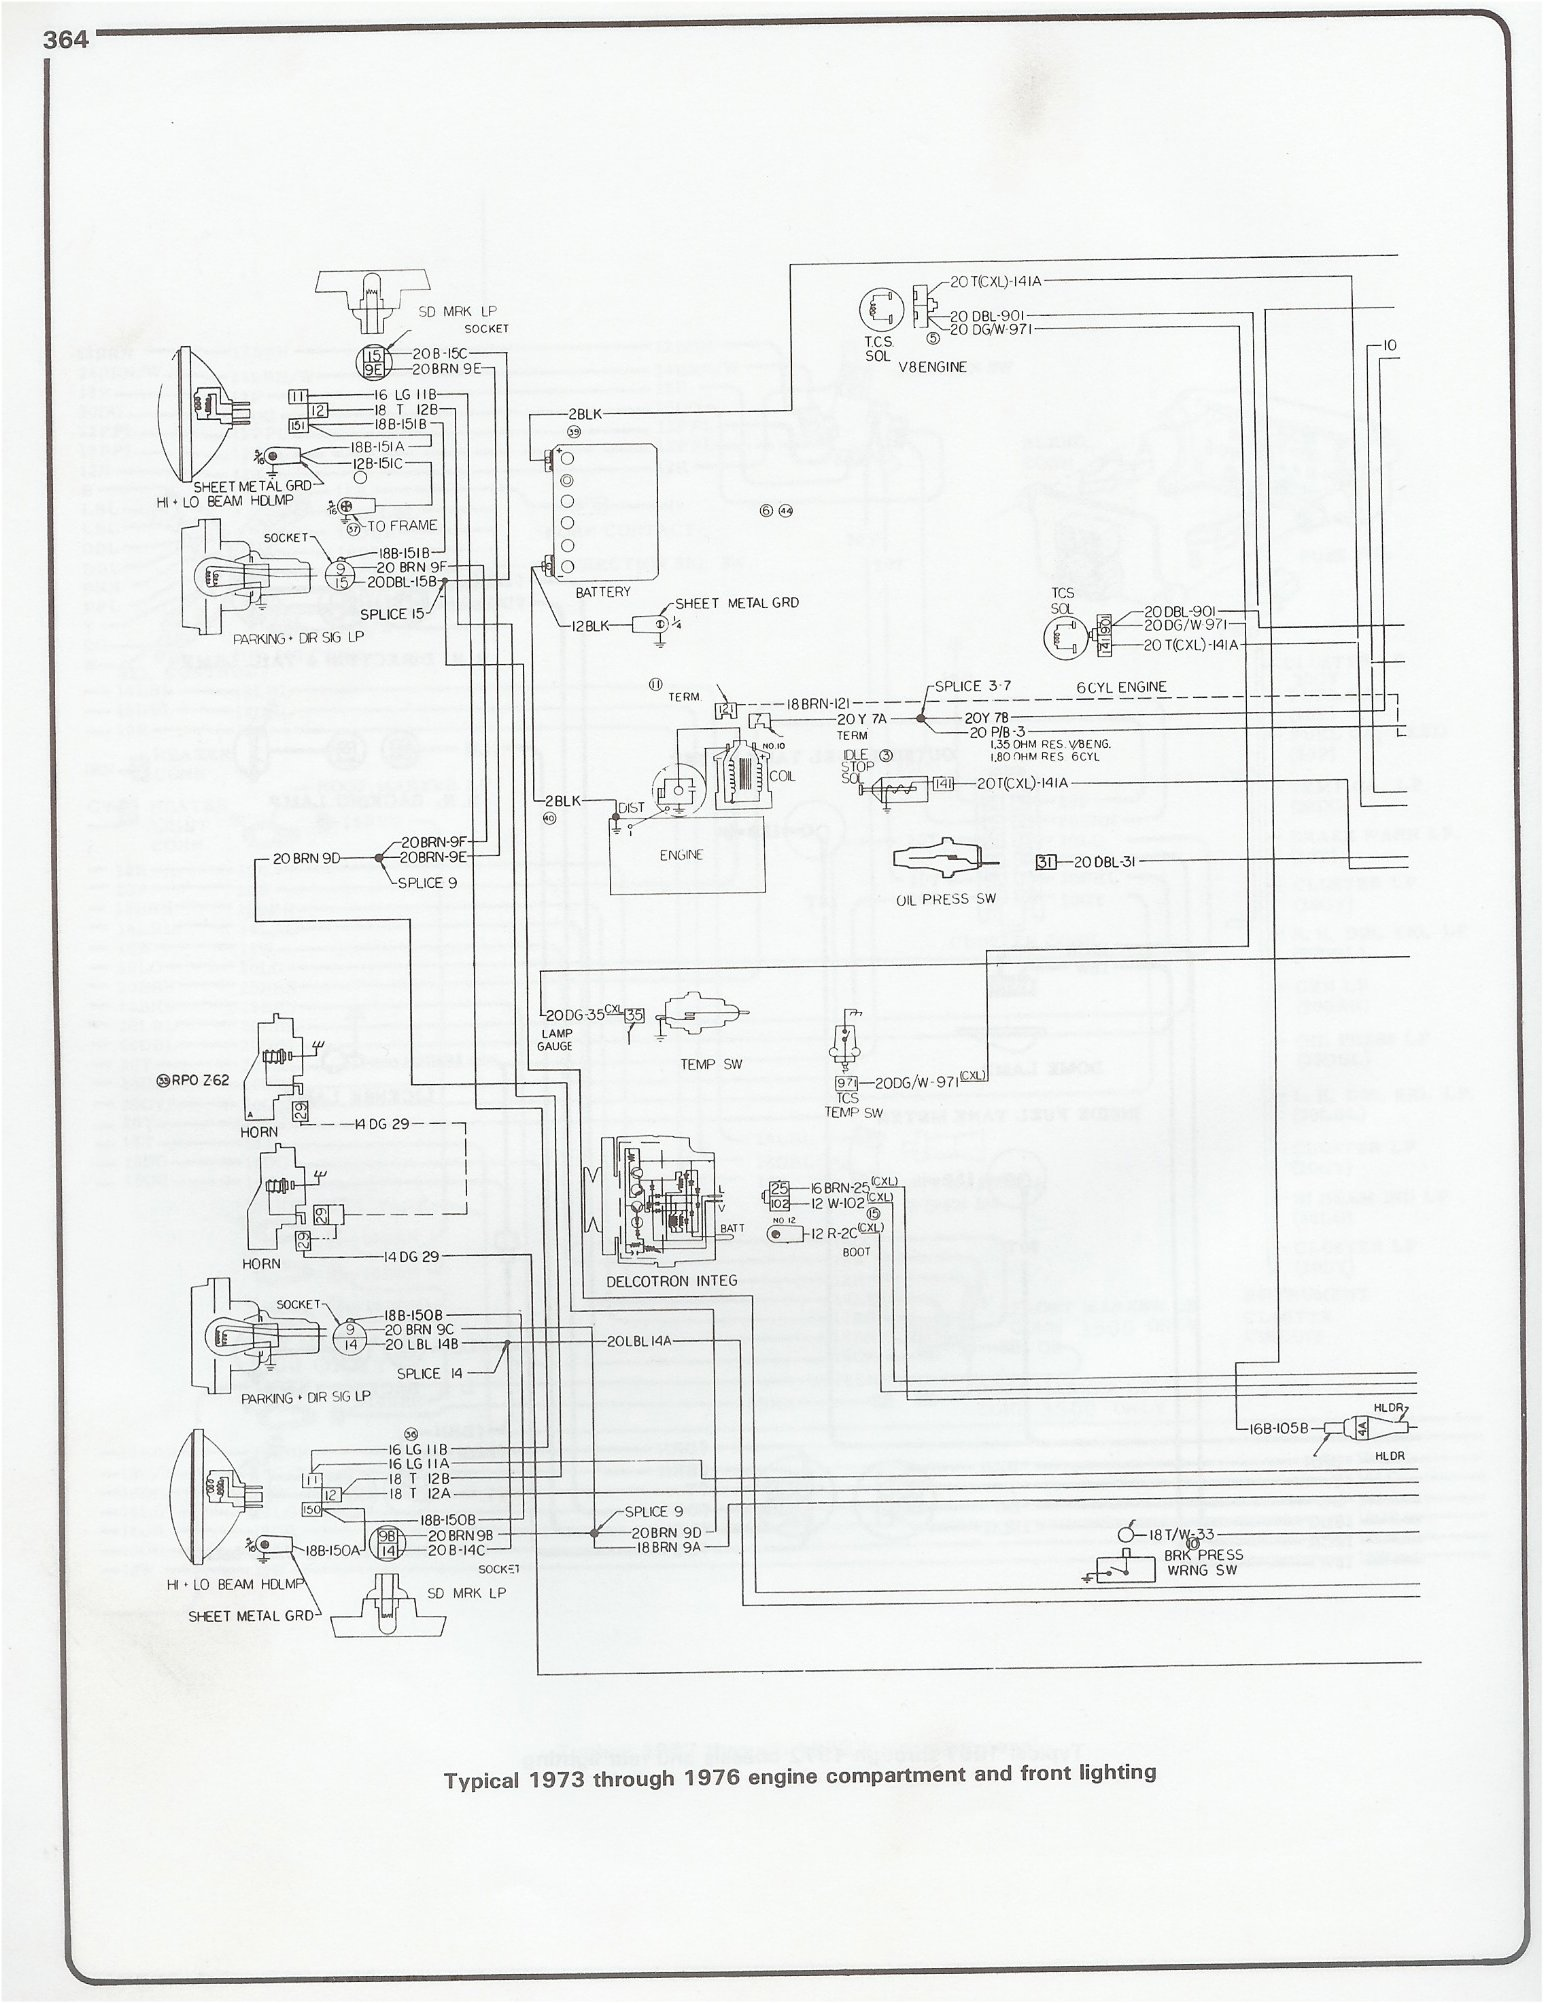 1973 Nova Wiring Harness Detailed Schematics Diagram Fuse Box Chevy Product Diagrams U2022 75